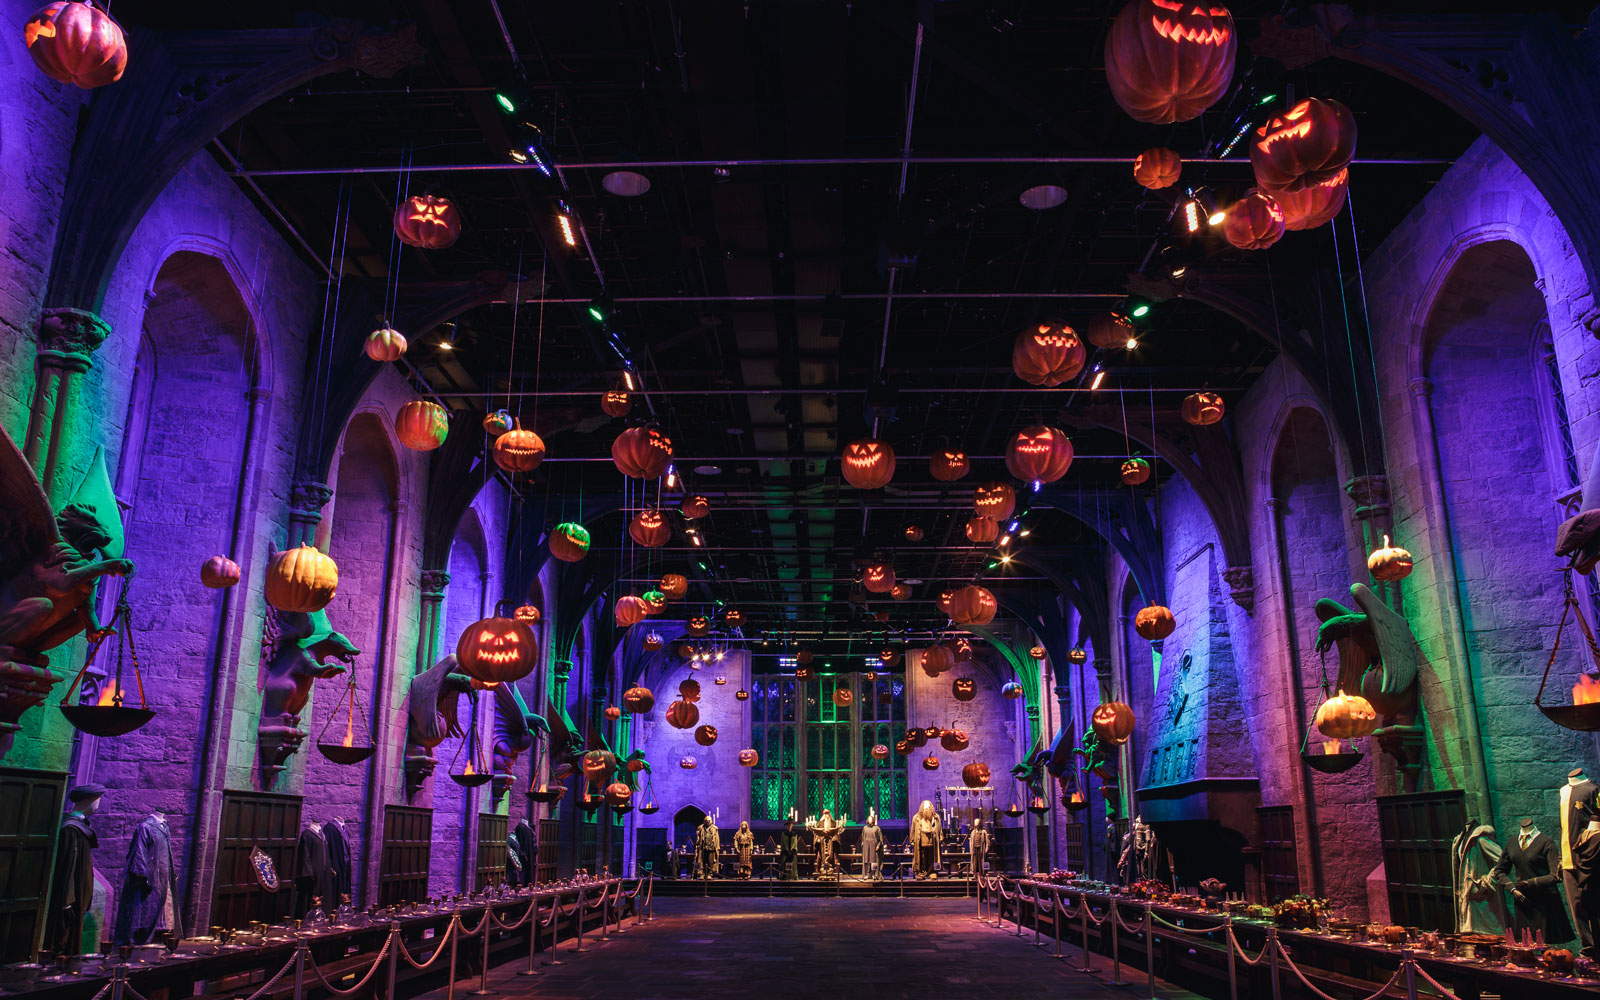 How to Have a Harry Potter Halloween at a Real-life Hogwarts